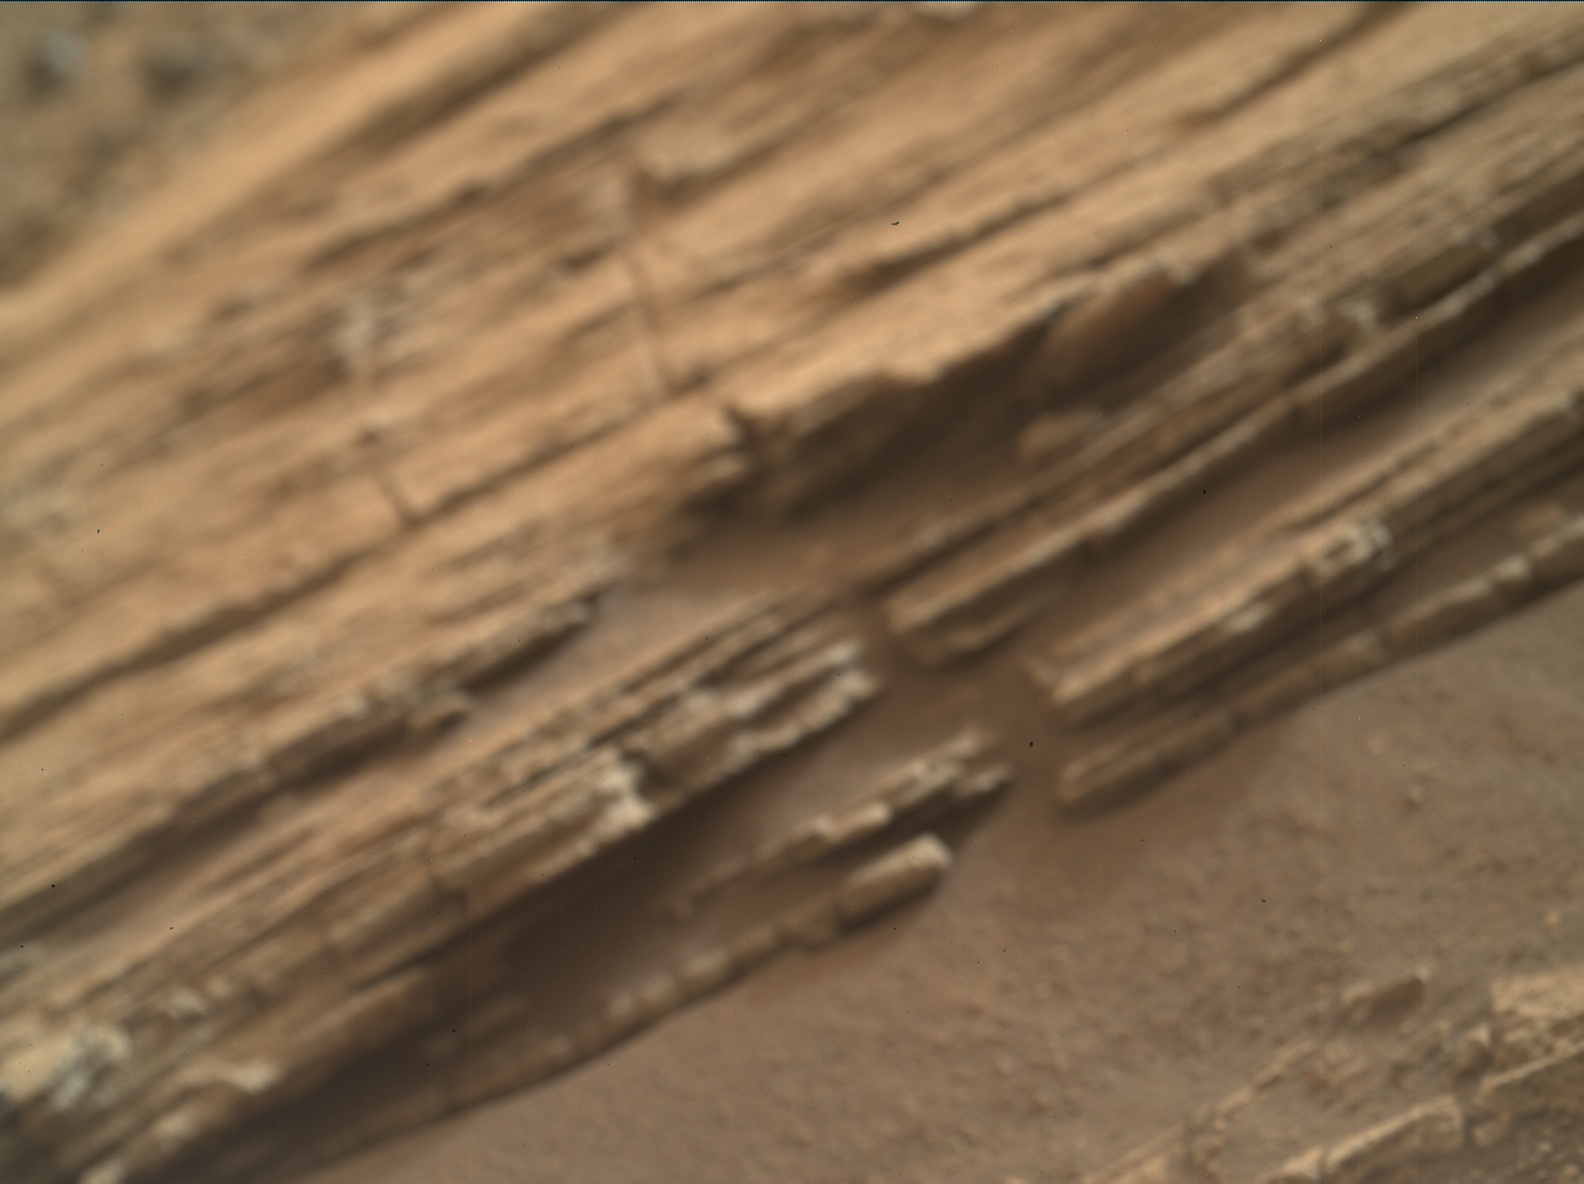 Nasa's Mars rover Curiosity acquired this image using its Mars Hand Lens Imager (MAHLI) on Sol 828